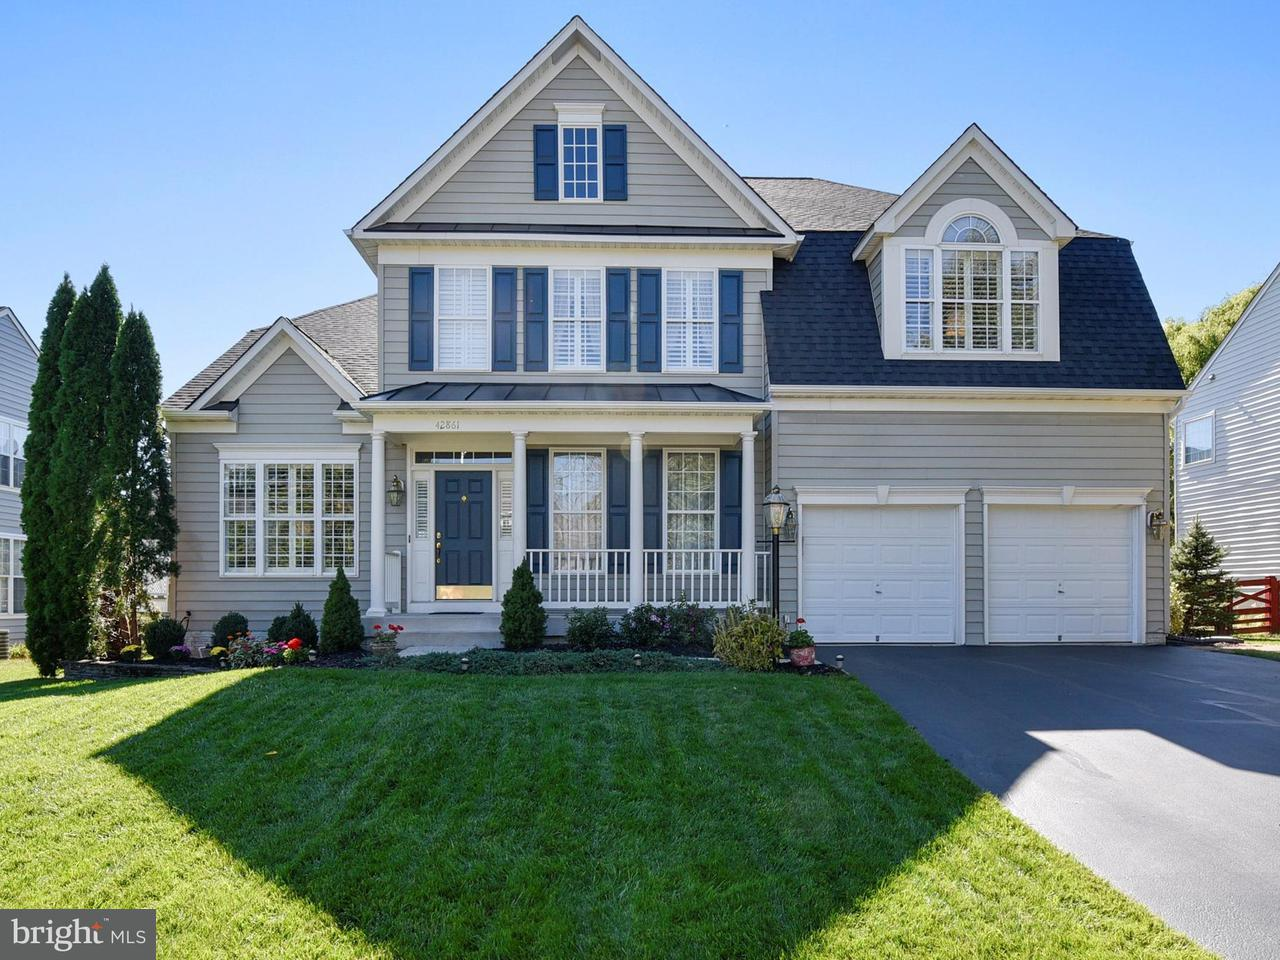 Single Family Home for Sale at 42861 Vestals Gap Drive 42861 Vestals Gap Drive Broadlands, Virginia 20148 United States